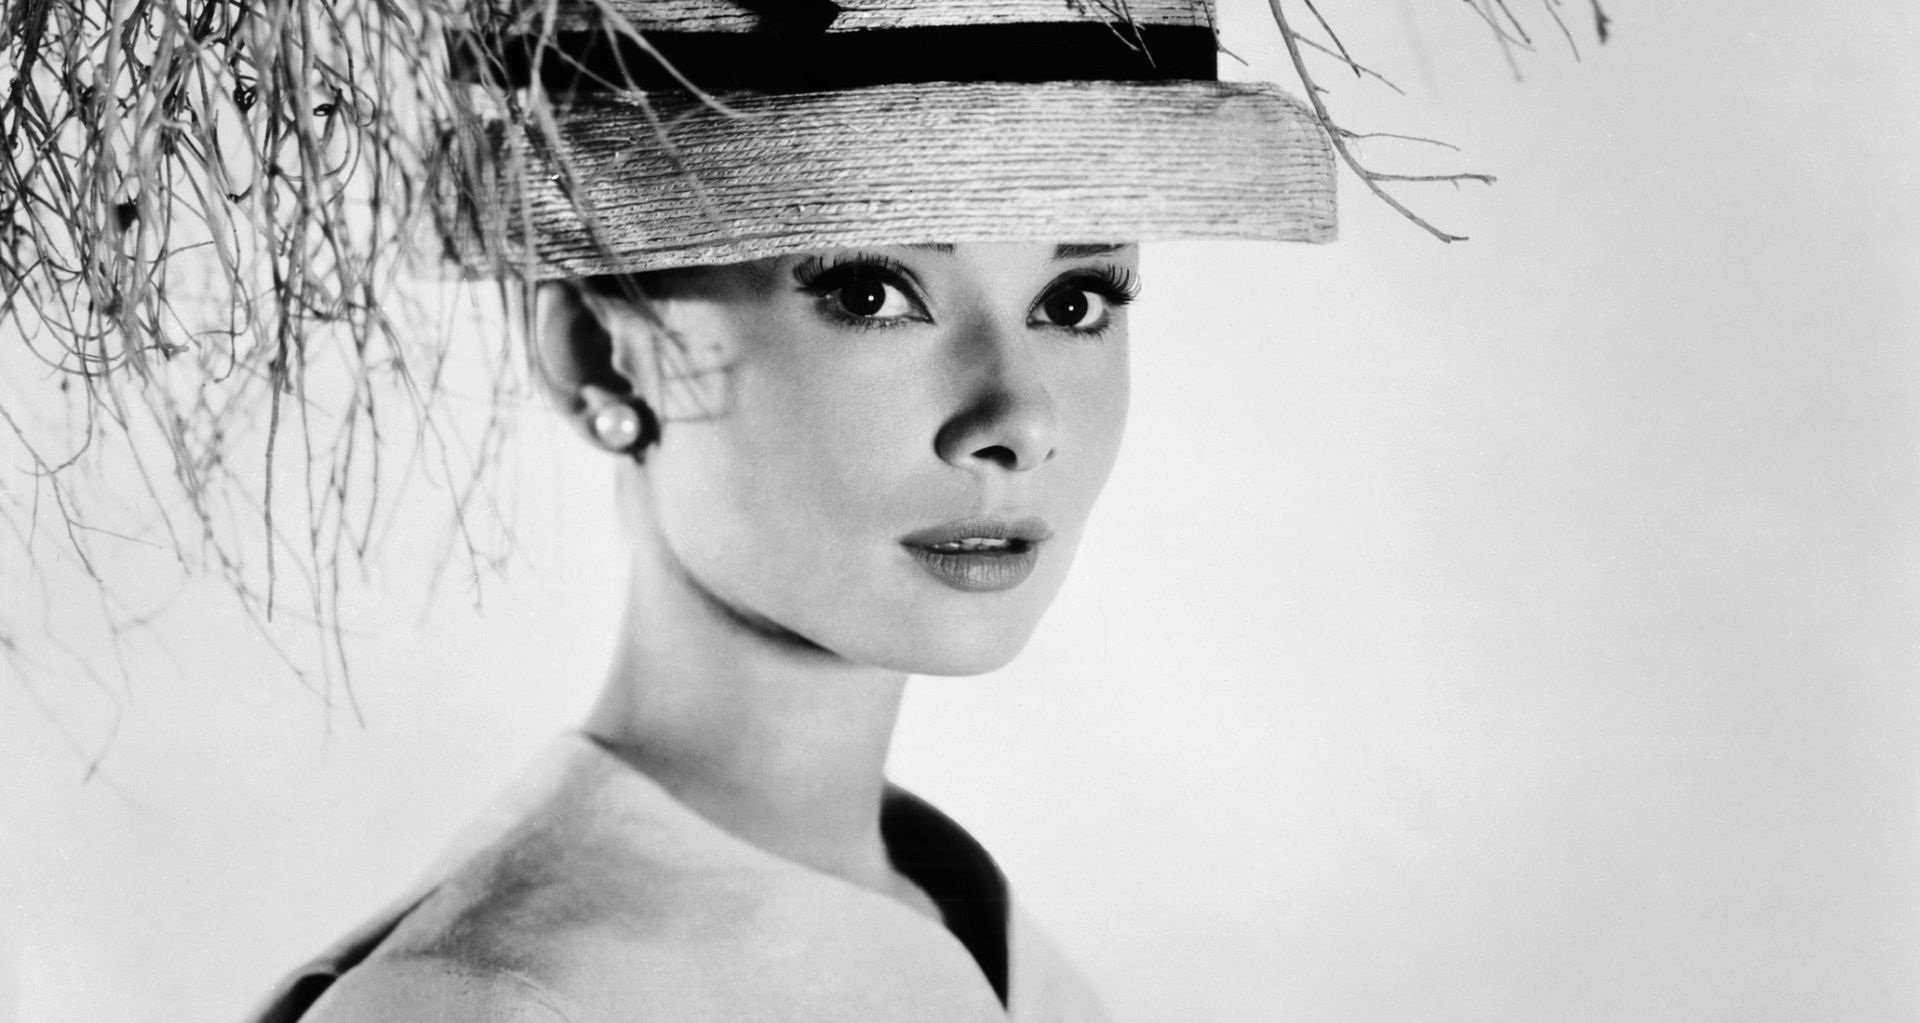 17 2015 By Stephen Comments Off on Audrey Hepburn Wallpapers HD 1920x1023